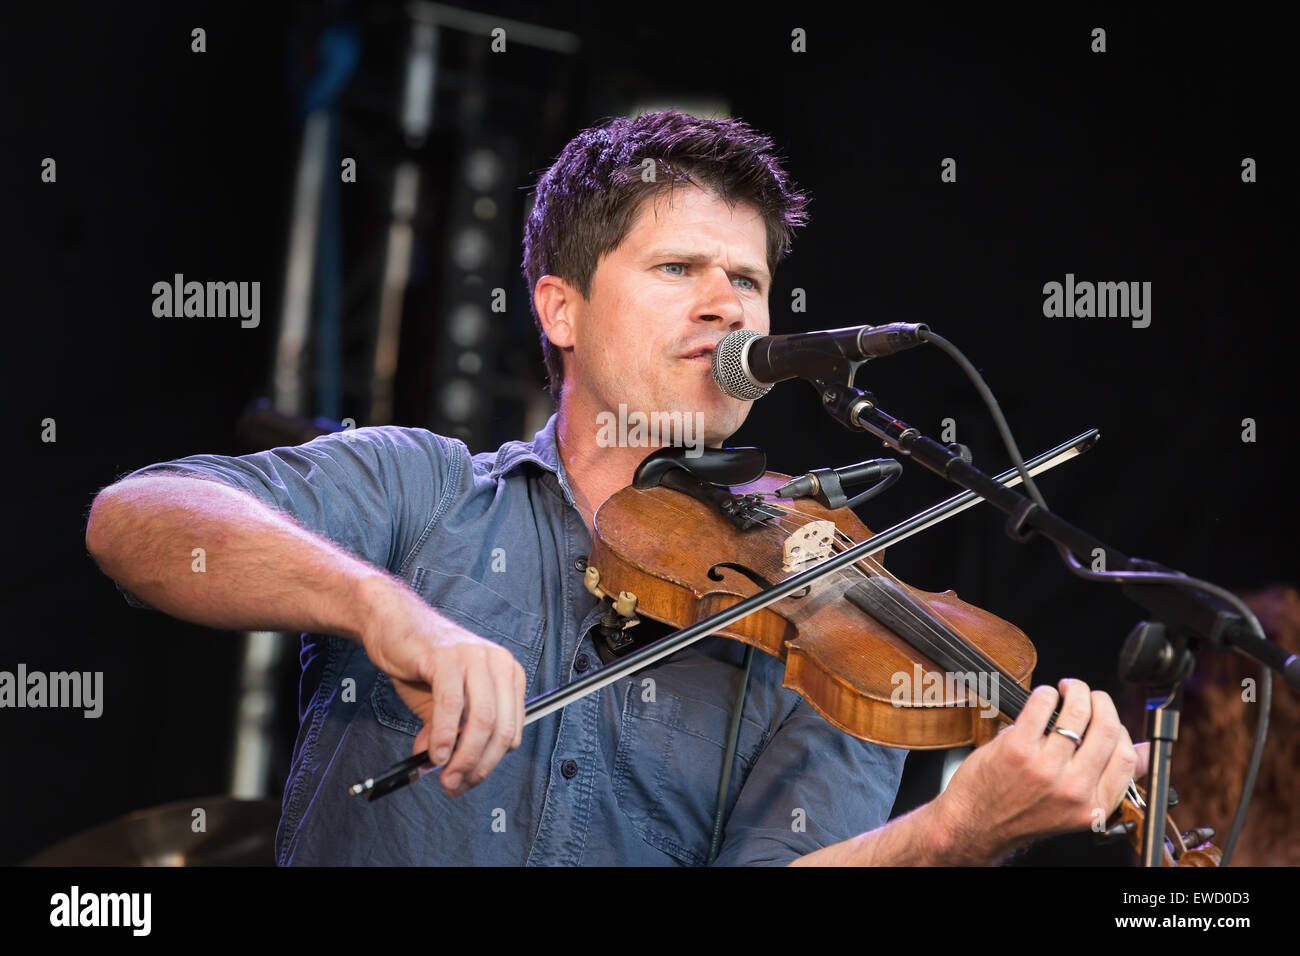 Folk singer and songwriter Seth Lakeman performing at Behind the Castle music festival, 2014 - Stock Image